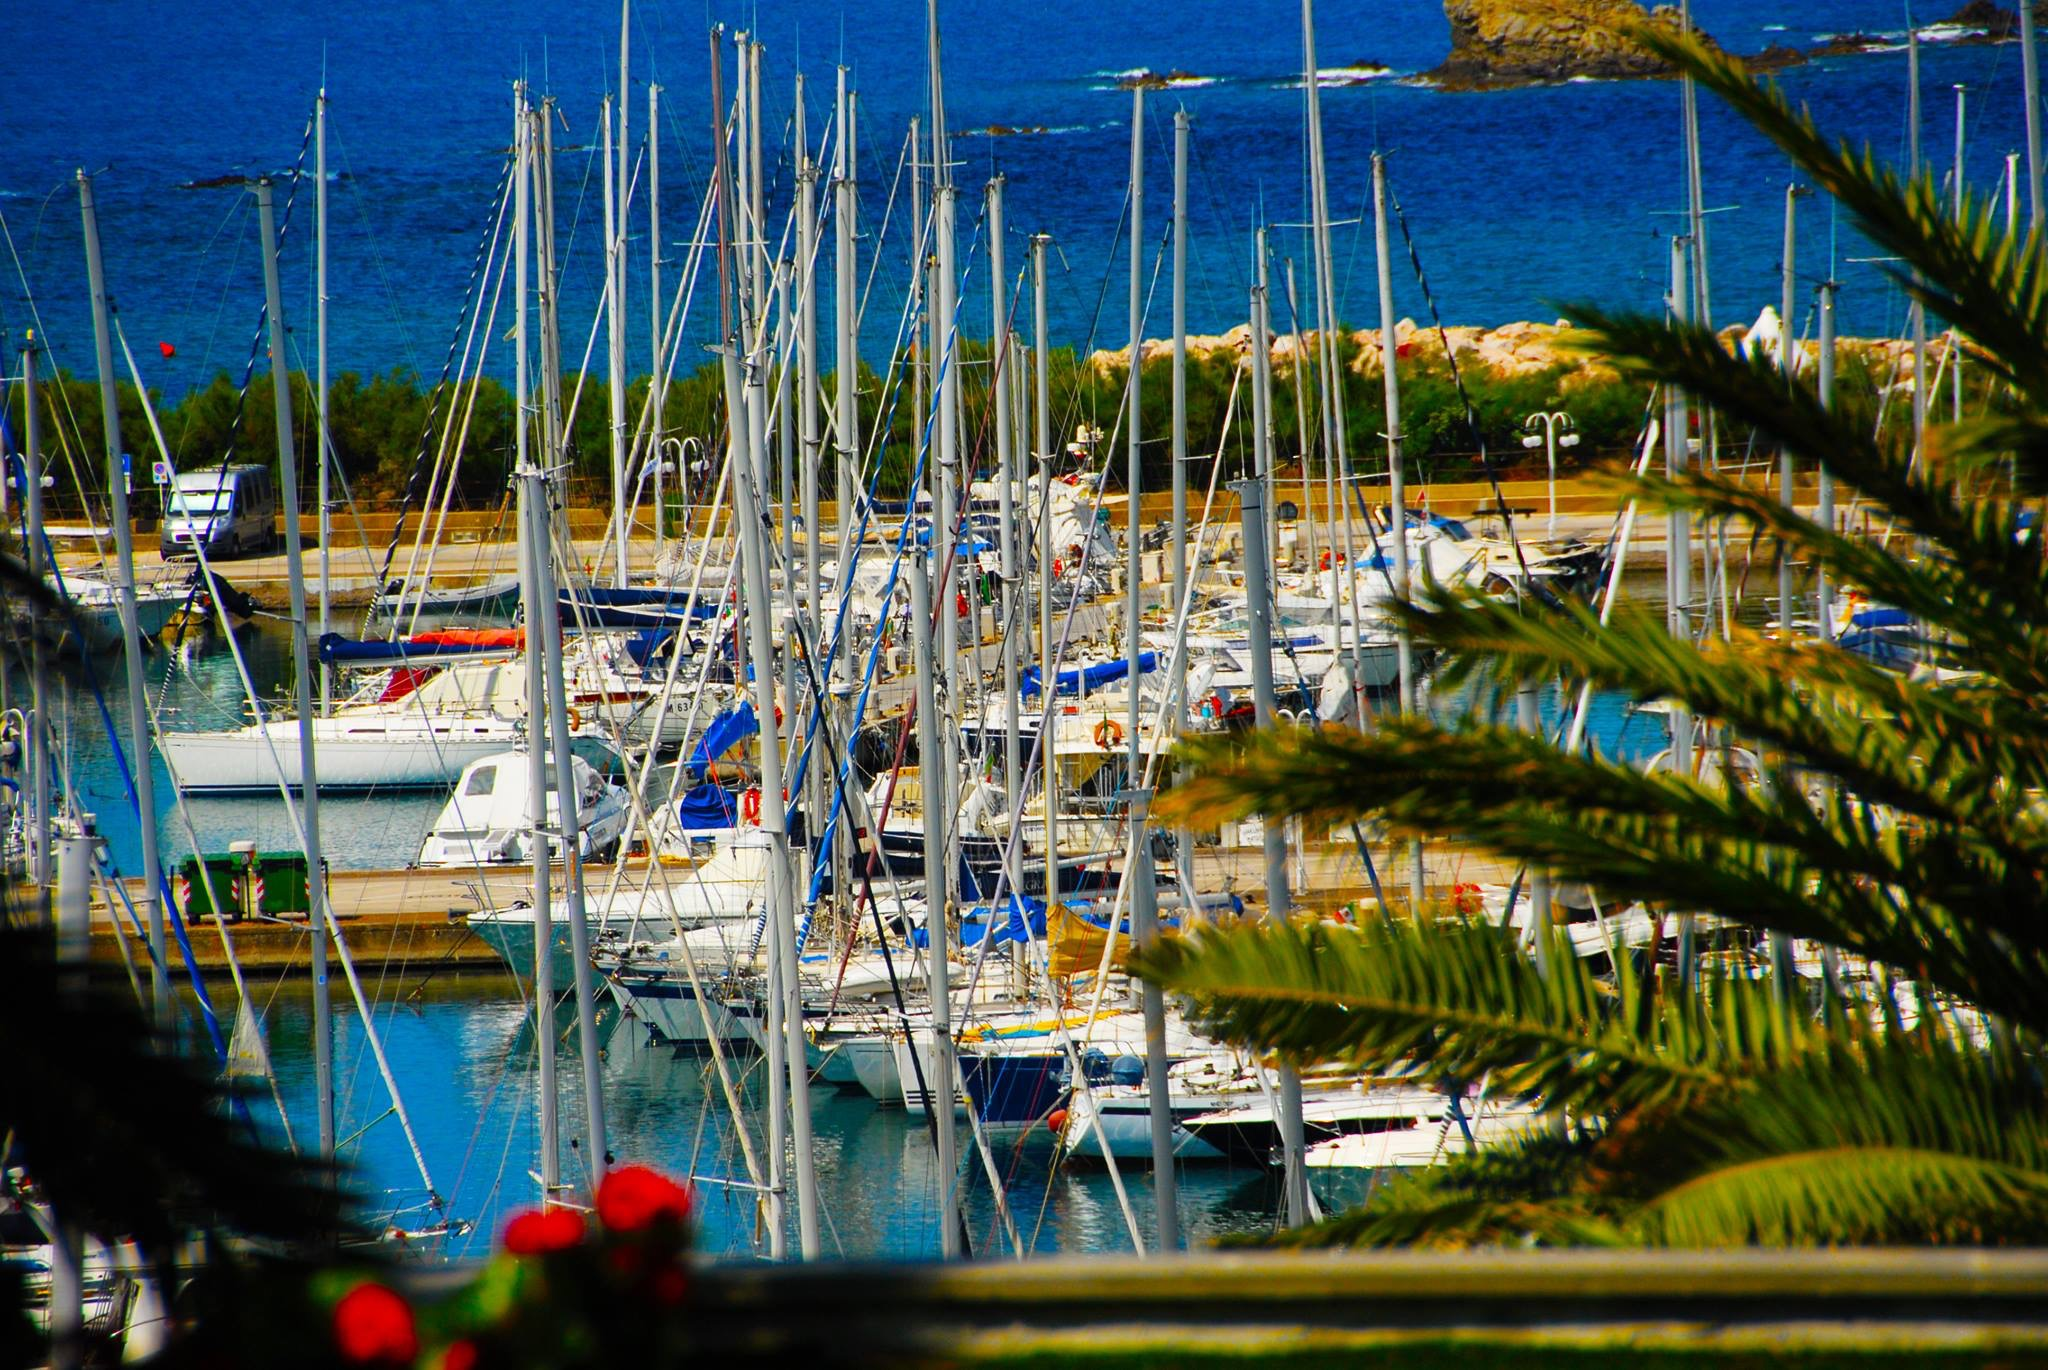 Yacht Harbor, Punta Ala - great place for sailing the Tuscan Archipelago | Photo Credit: Keith Irvine